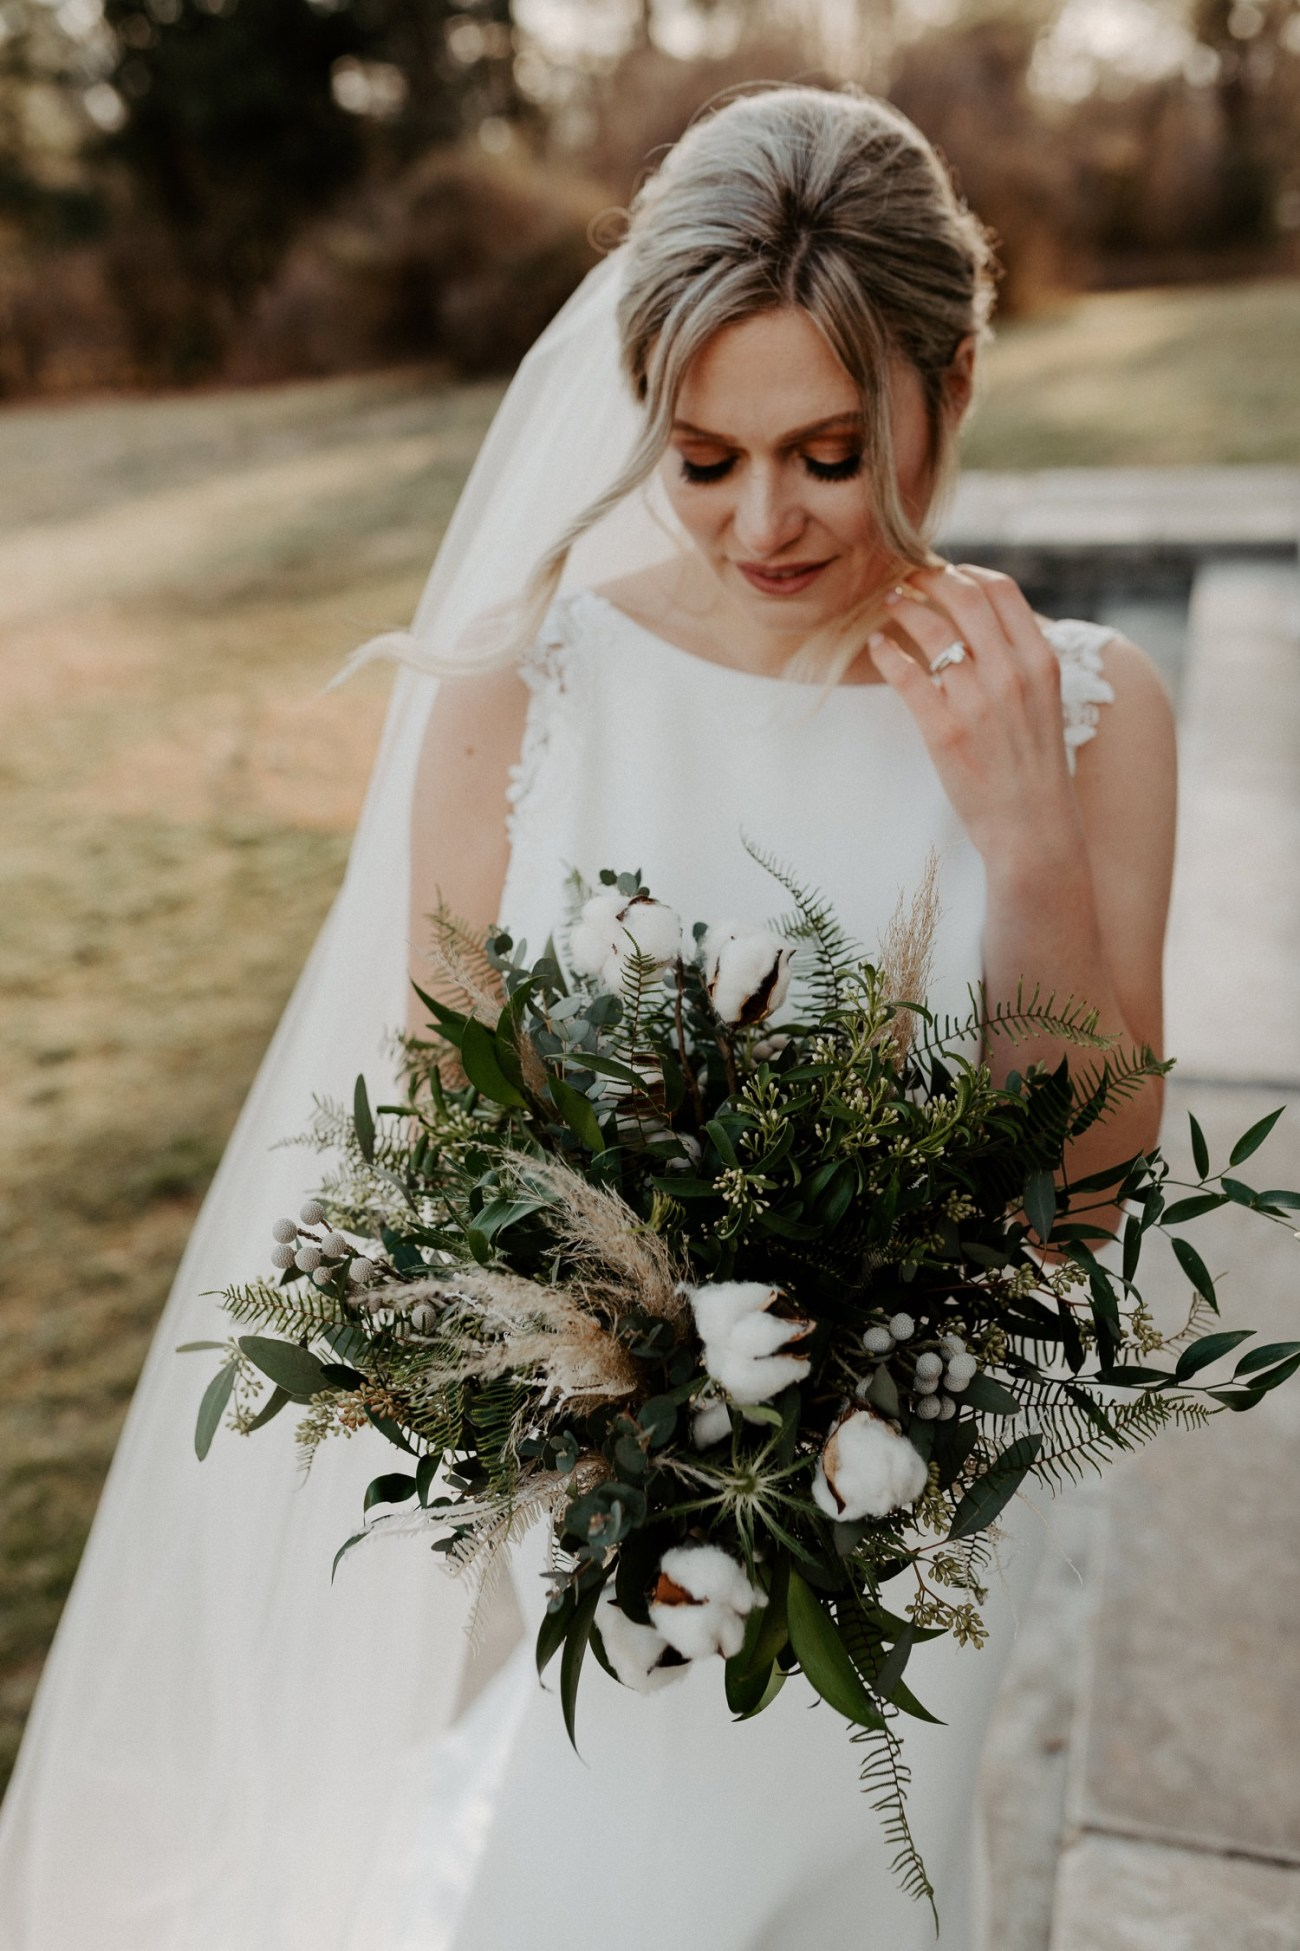 Winter Wedding Bouquet Inspiration Made By Viburnum Designs